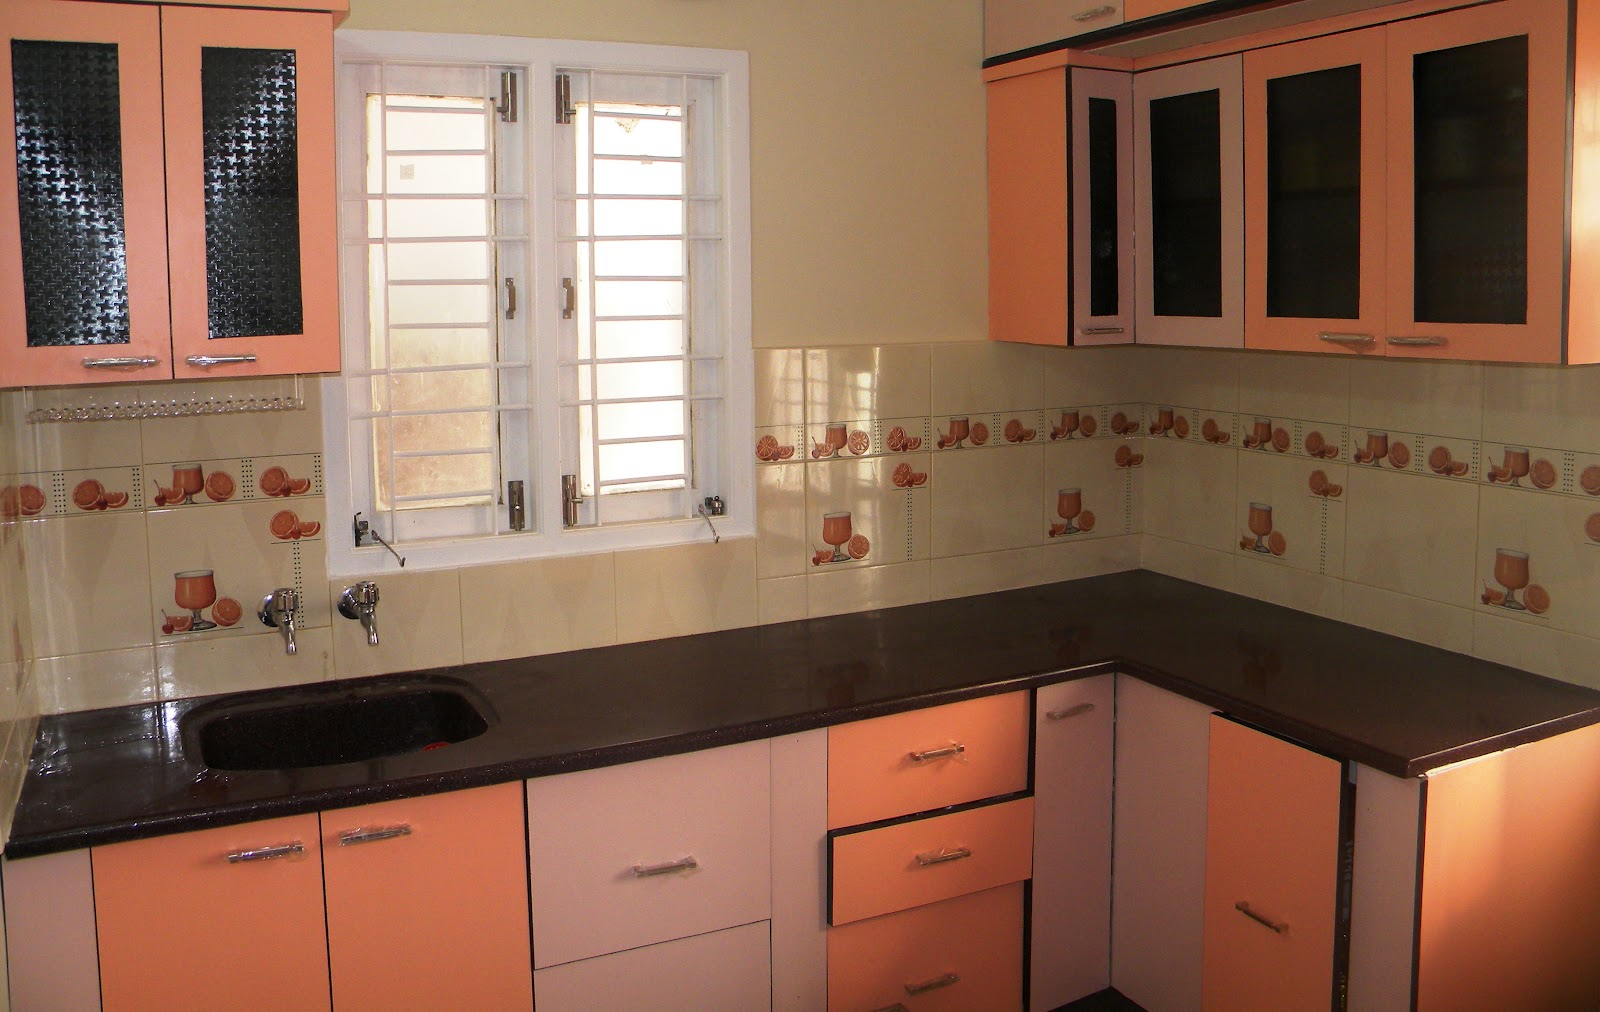 Sai decors photos interior painting contractors in for Lancashire interior home designs kitchens